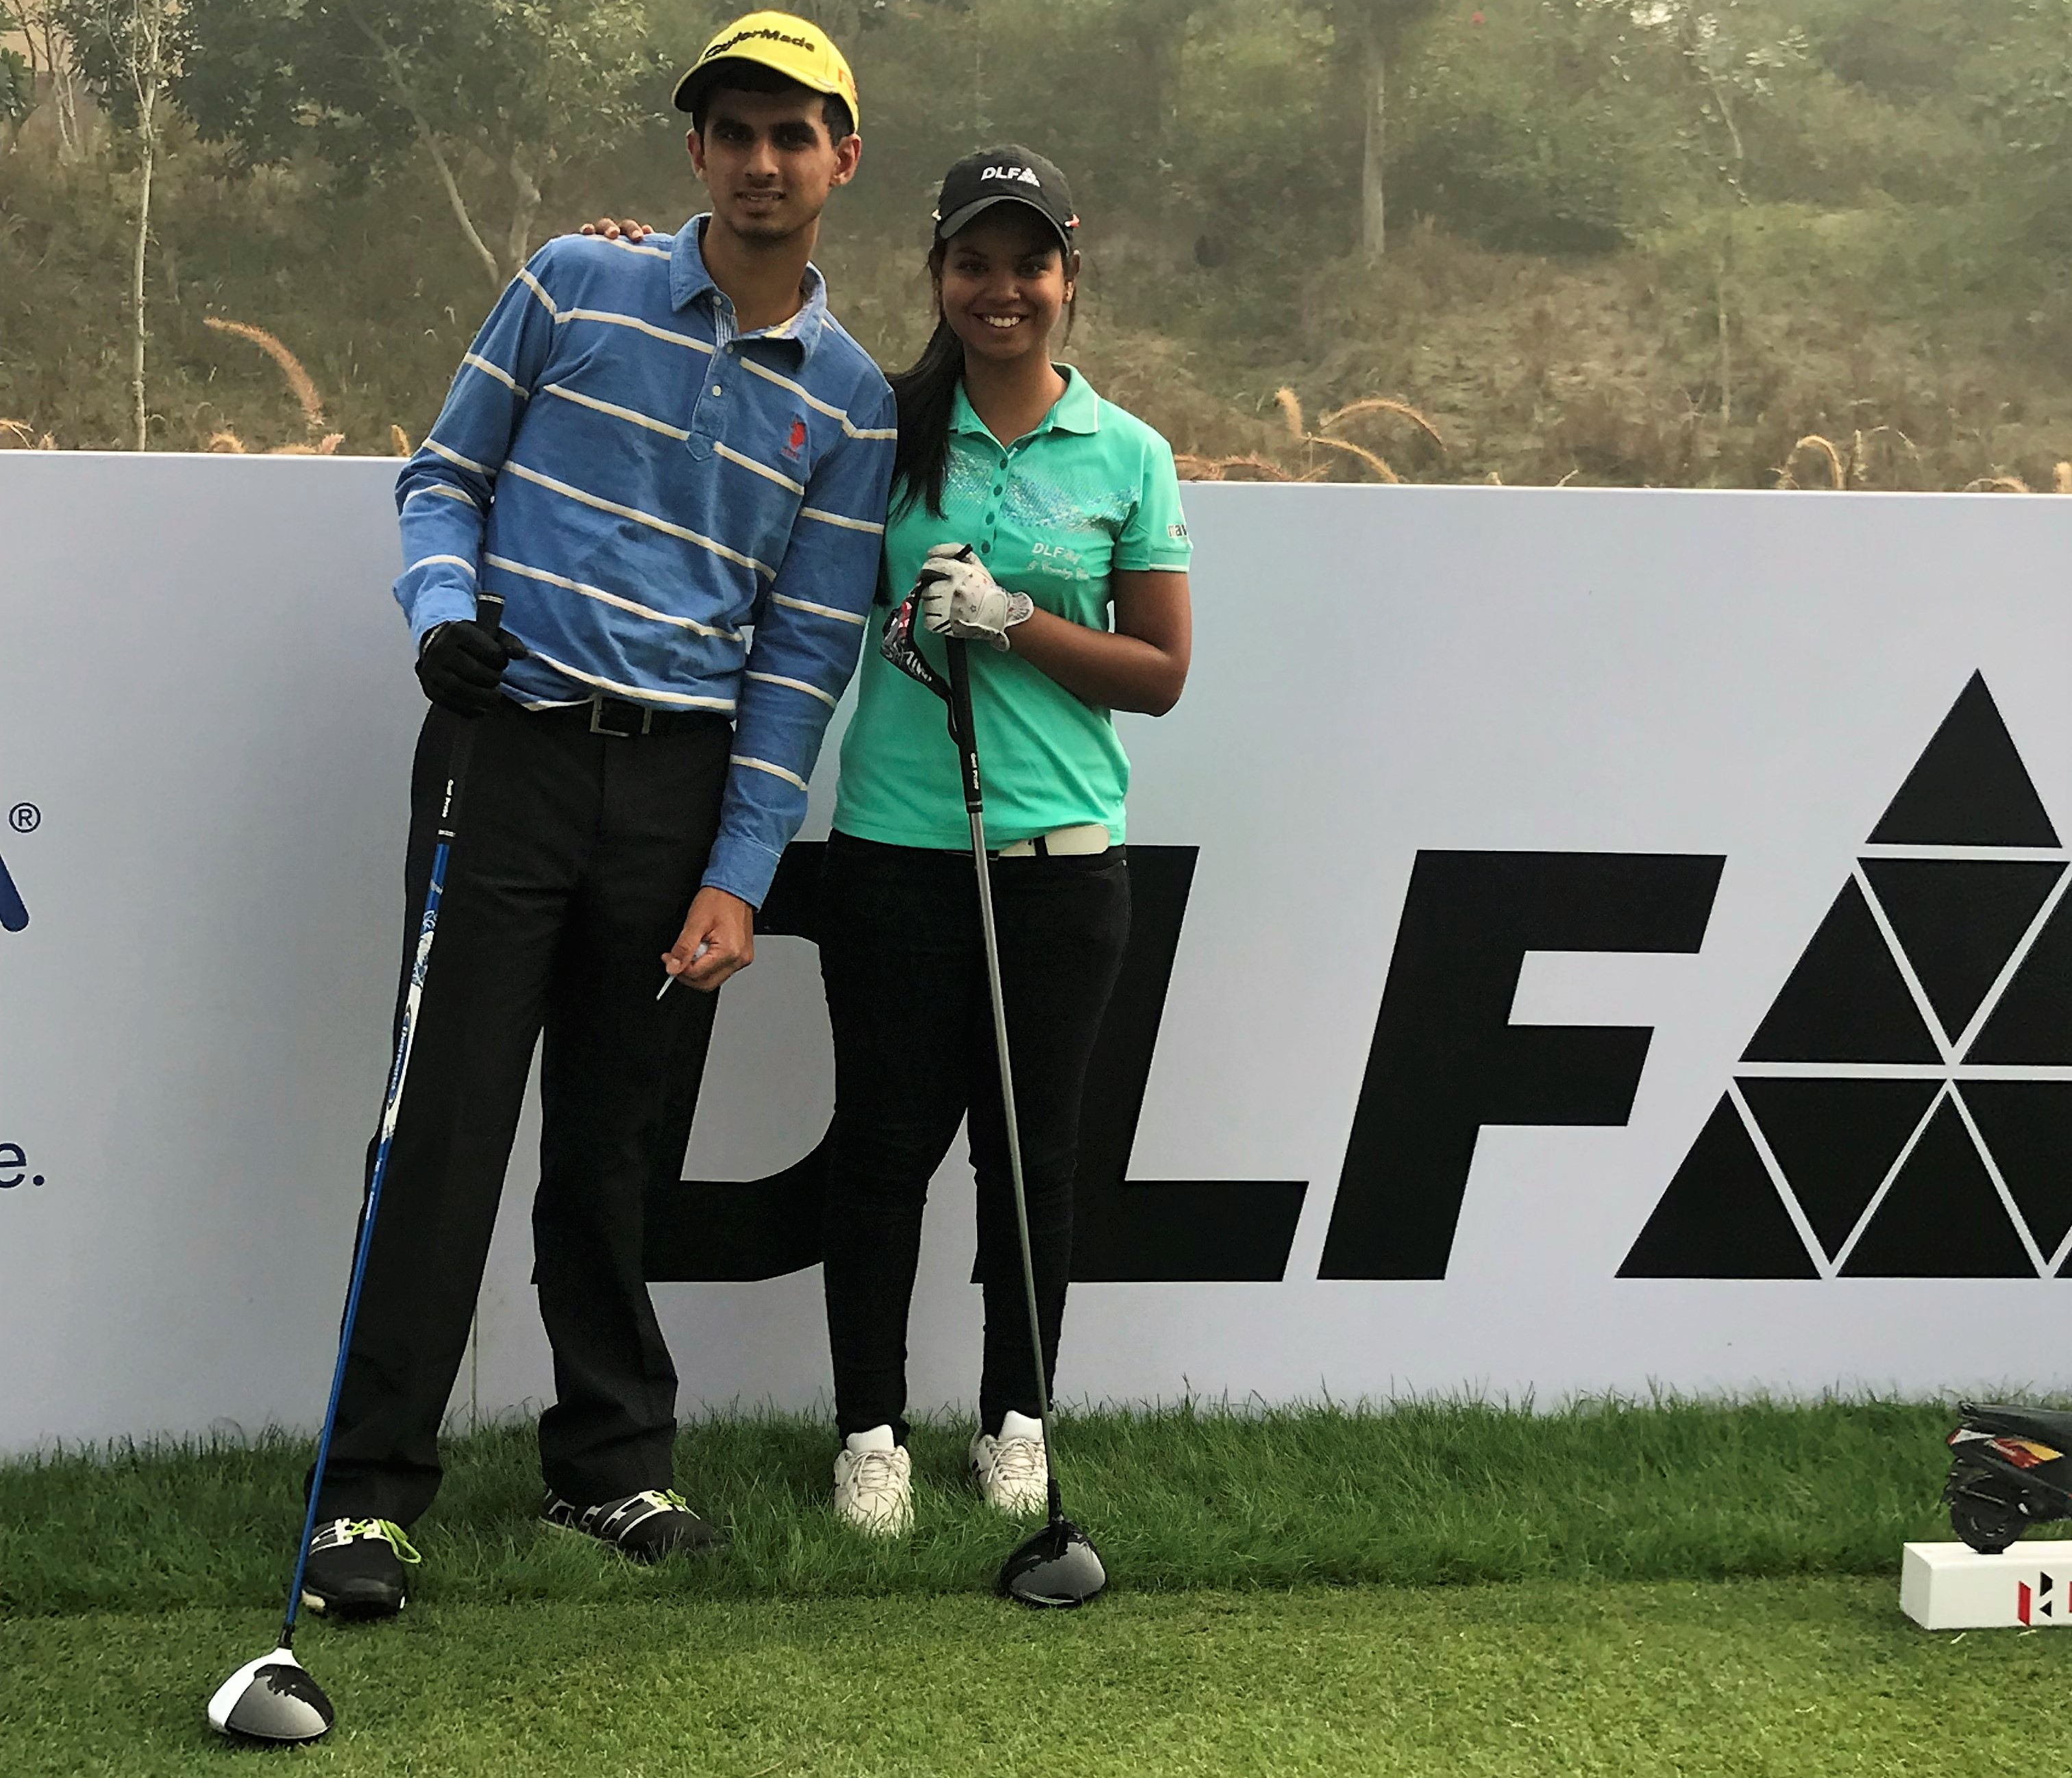 Ranveer played the hero indian ladies open 2017 proam round with ranveer played the hero indian ladies open 2017 proam round with the indian pro golfer ms vani kapoor altavistaventures